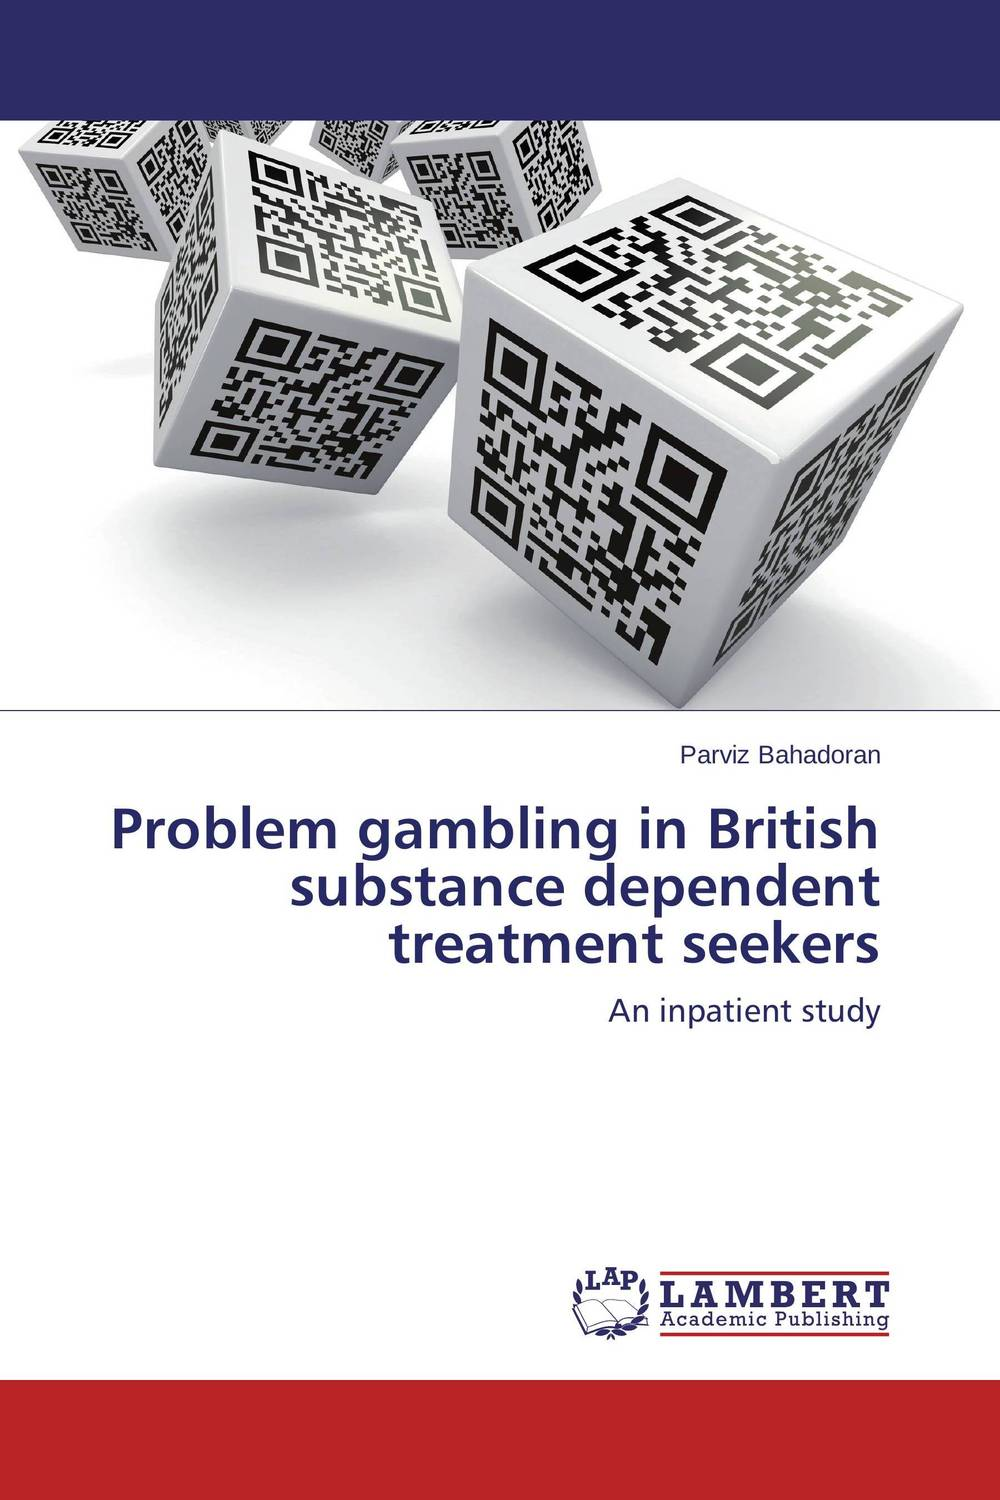 Problem gambling in British substance dependent treatment seekers psychiatric disorders in postpartum period